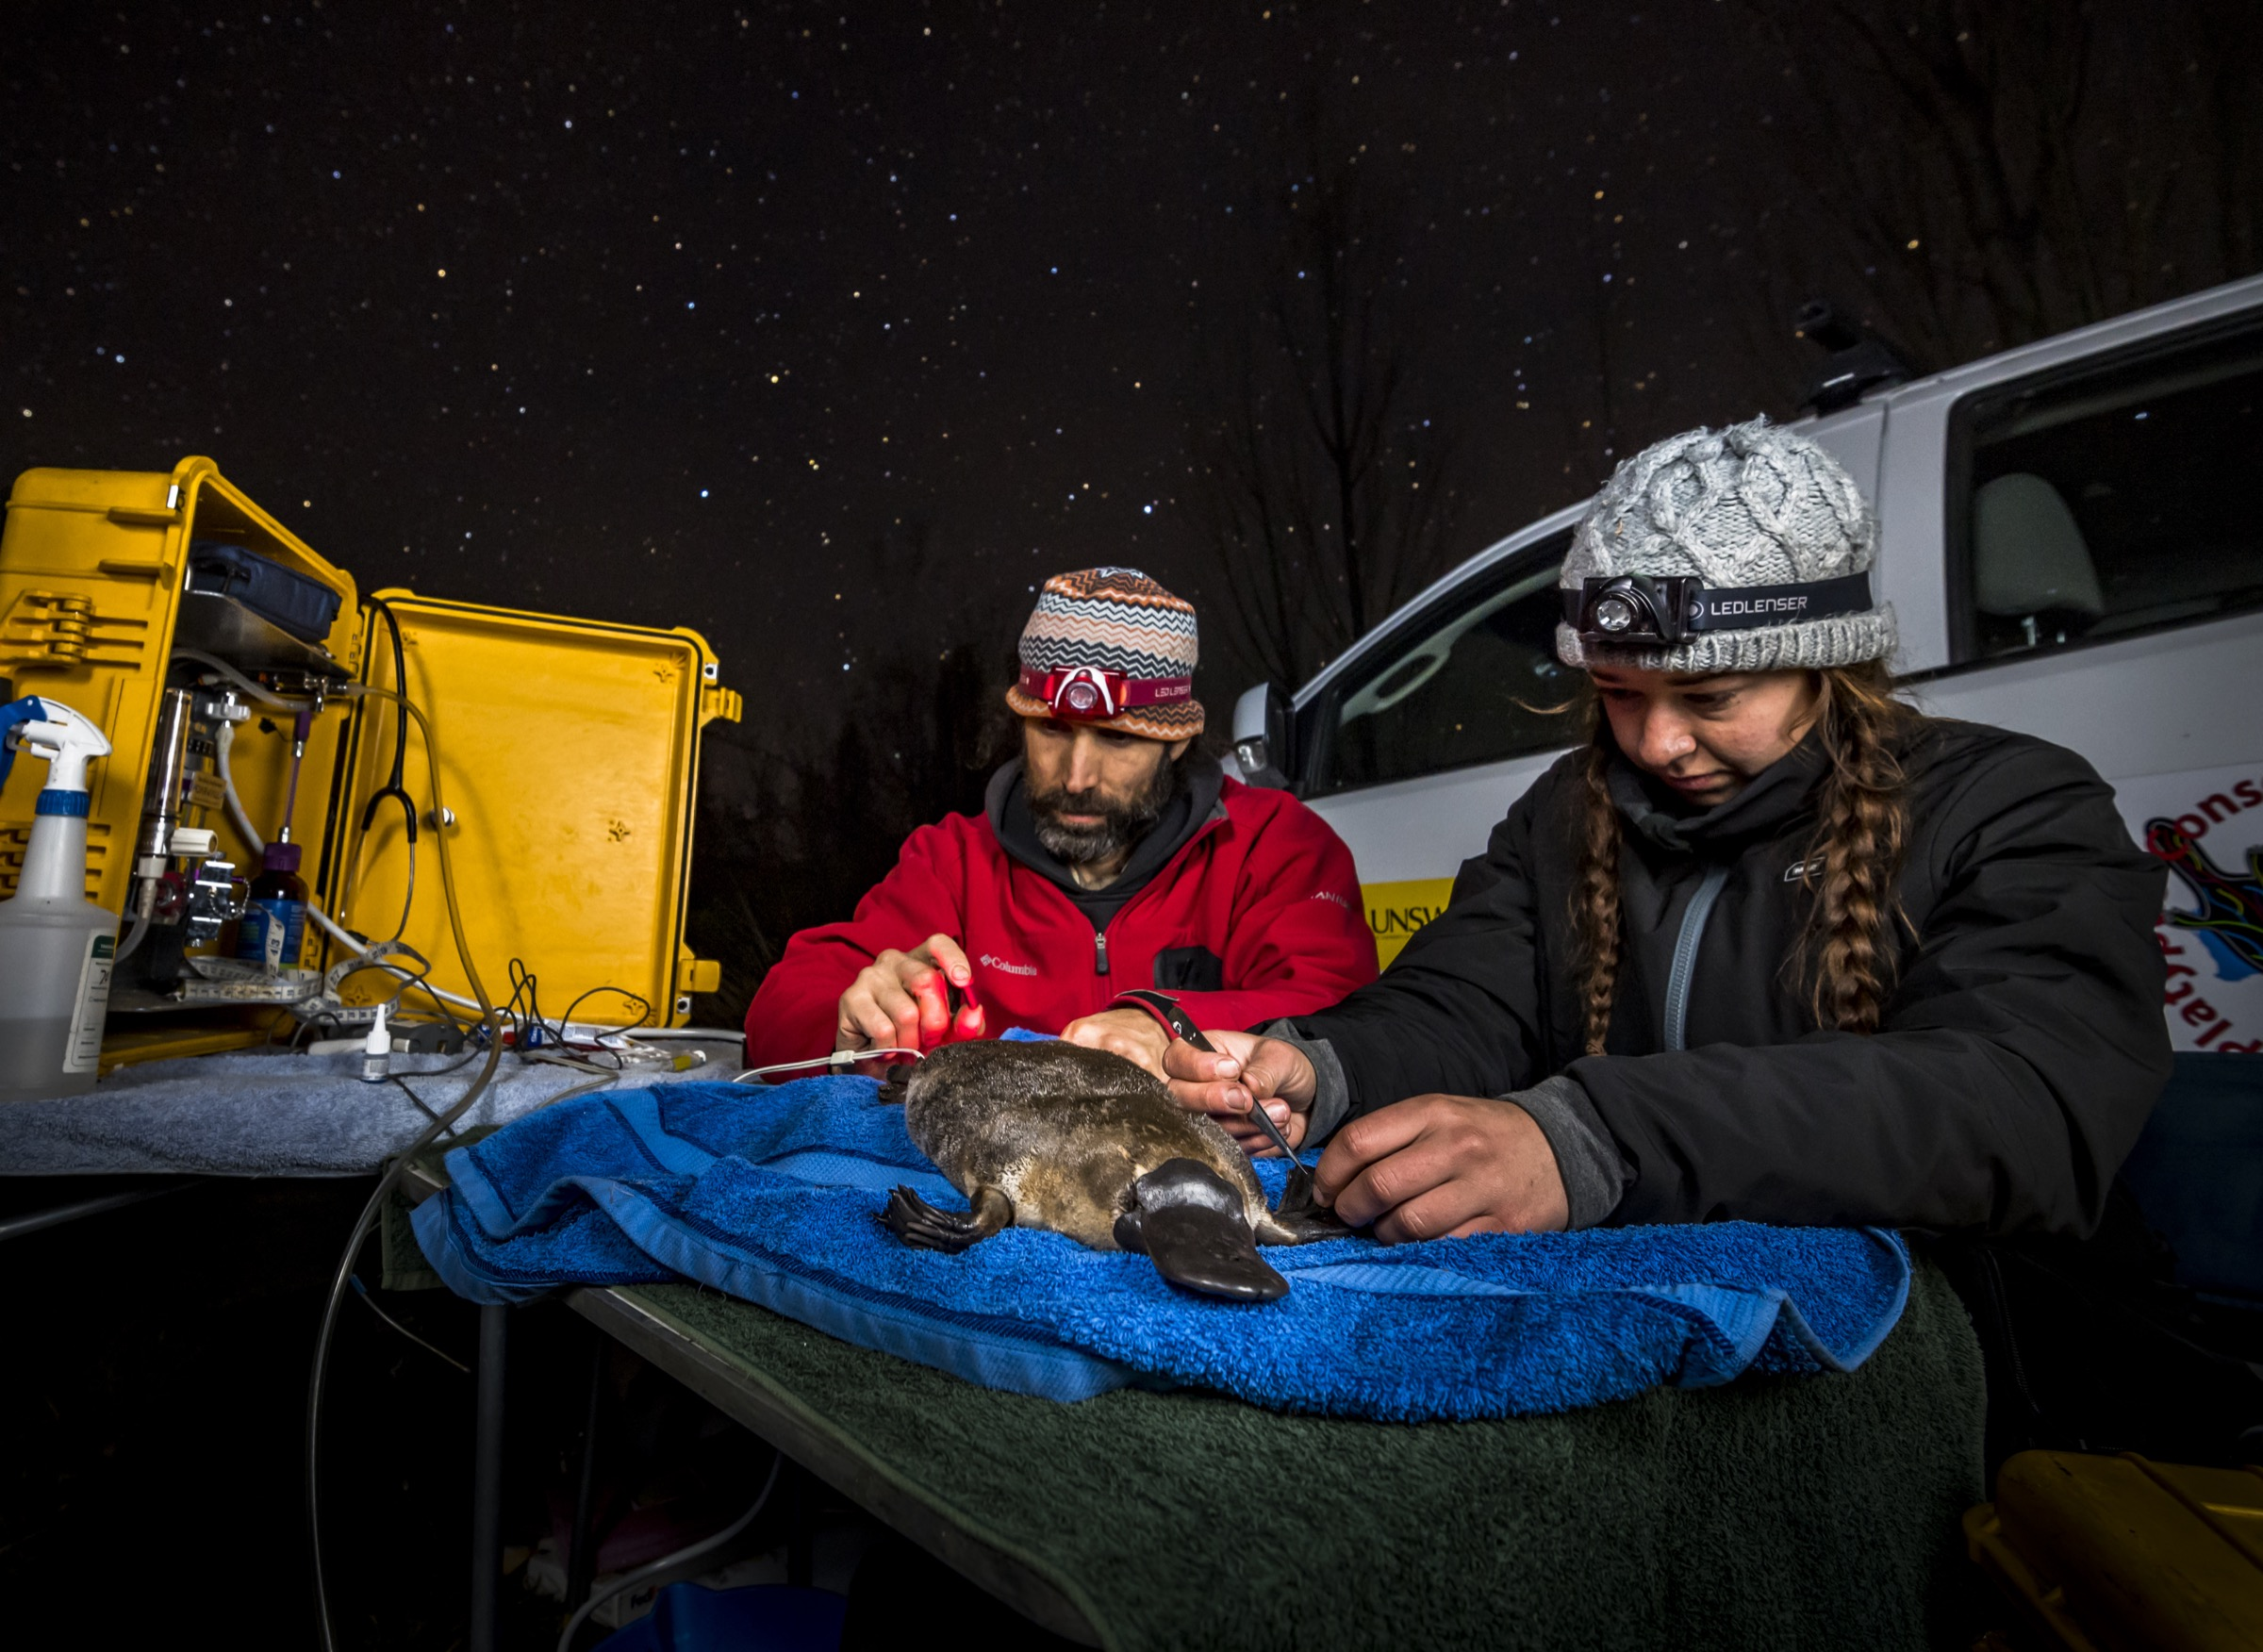 Researchers Gilad Bino and Tahneal Hawke work quickly to surgically implant a radio transponder into an anaesthetized platypus before its release. Transponders like this are helping scientists better understand platypus movements.